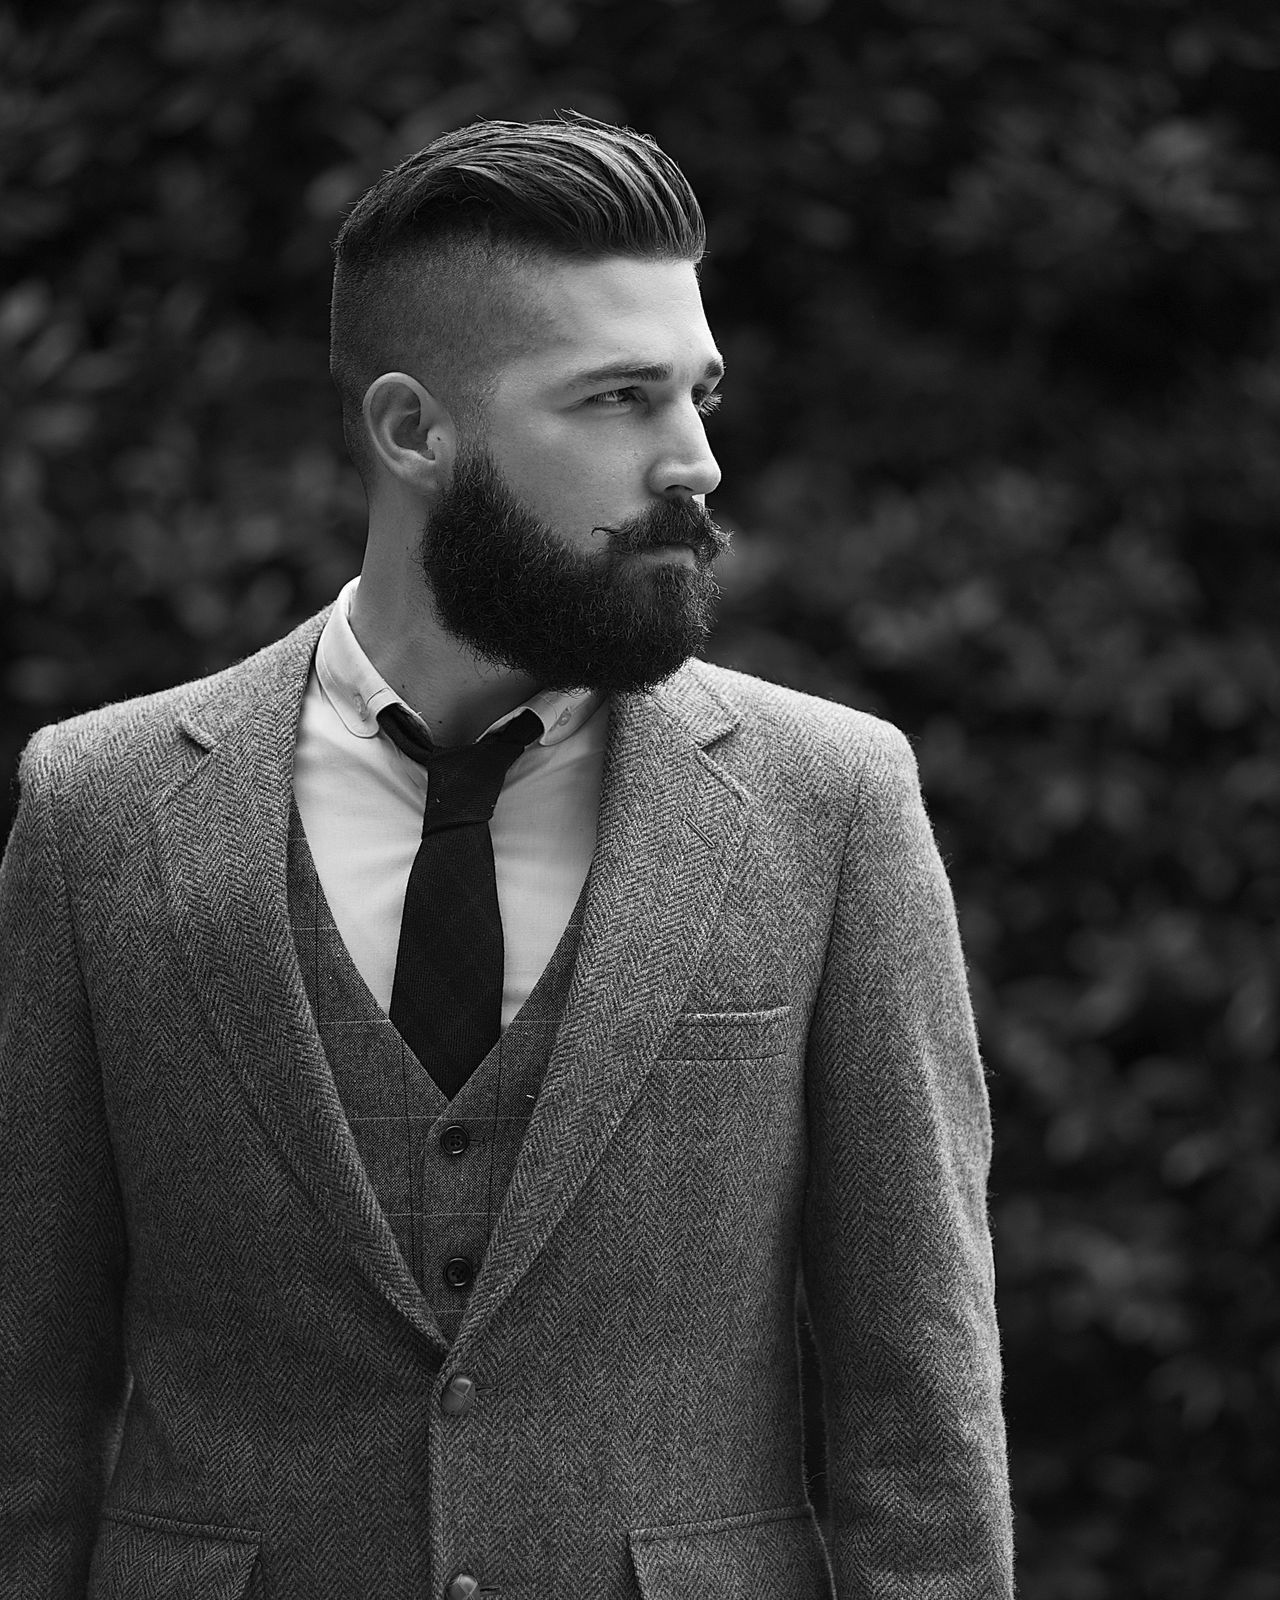 Hipster men hairstyles 25 hairstyles for hipster men look - I Wanna Look Good Too C Mens Modern Hairstyleshipster